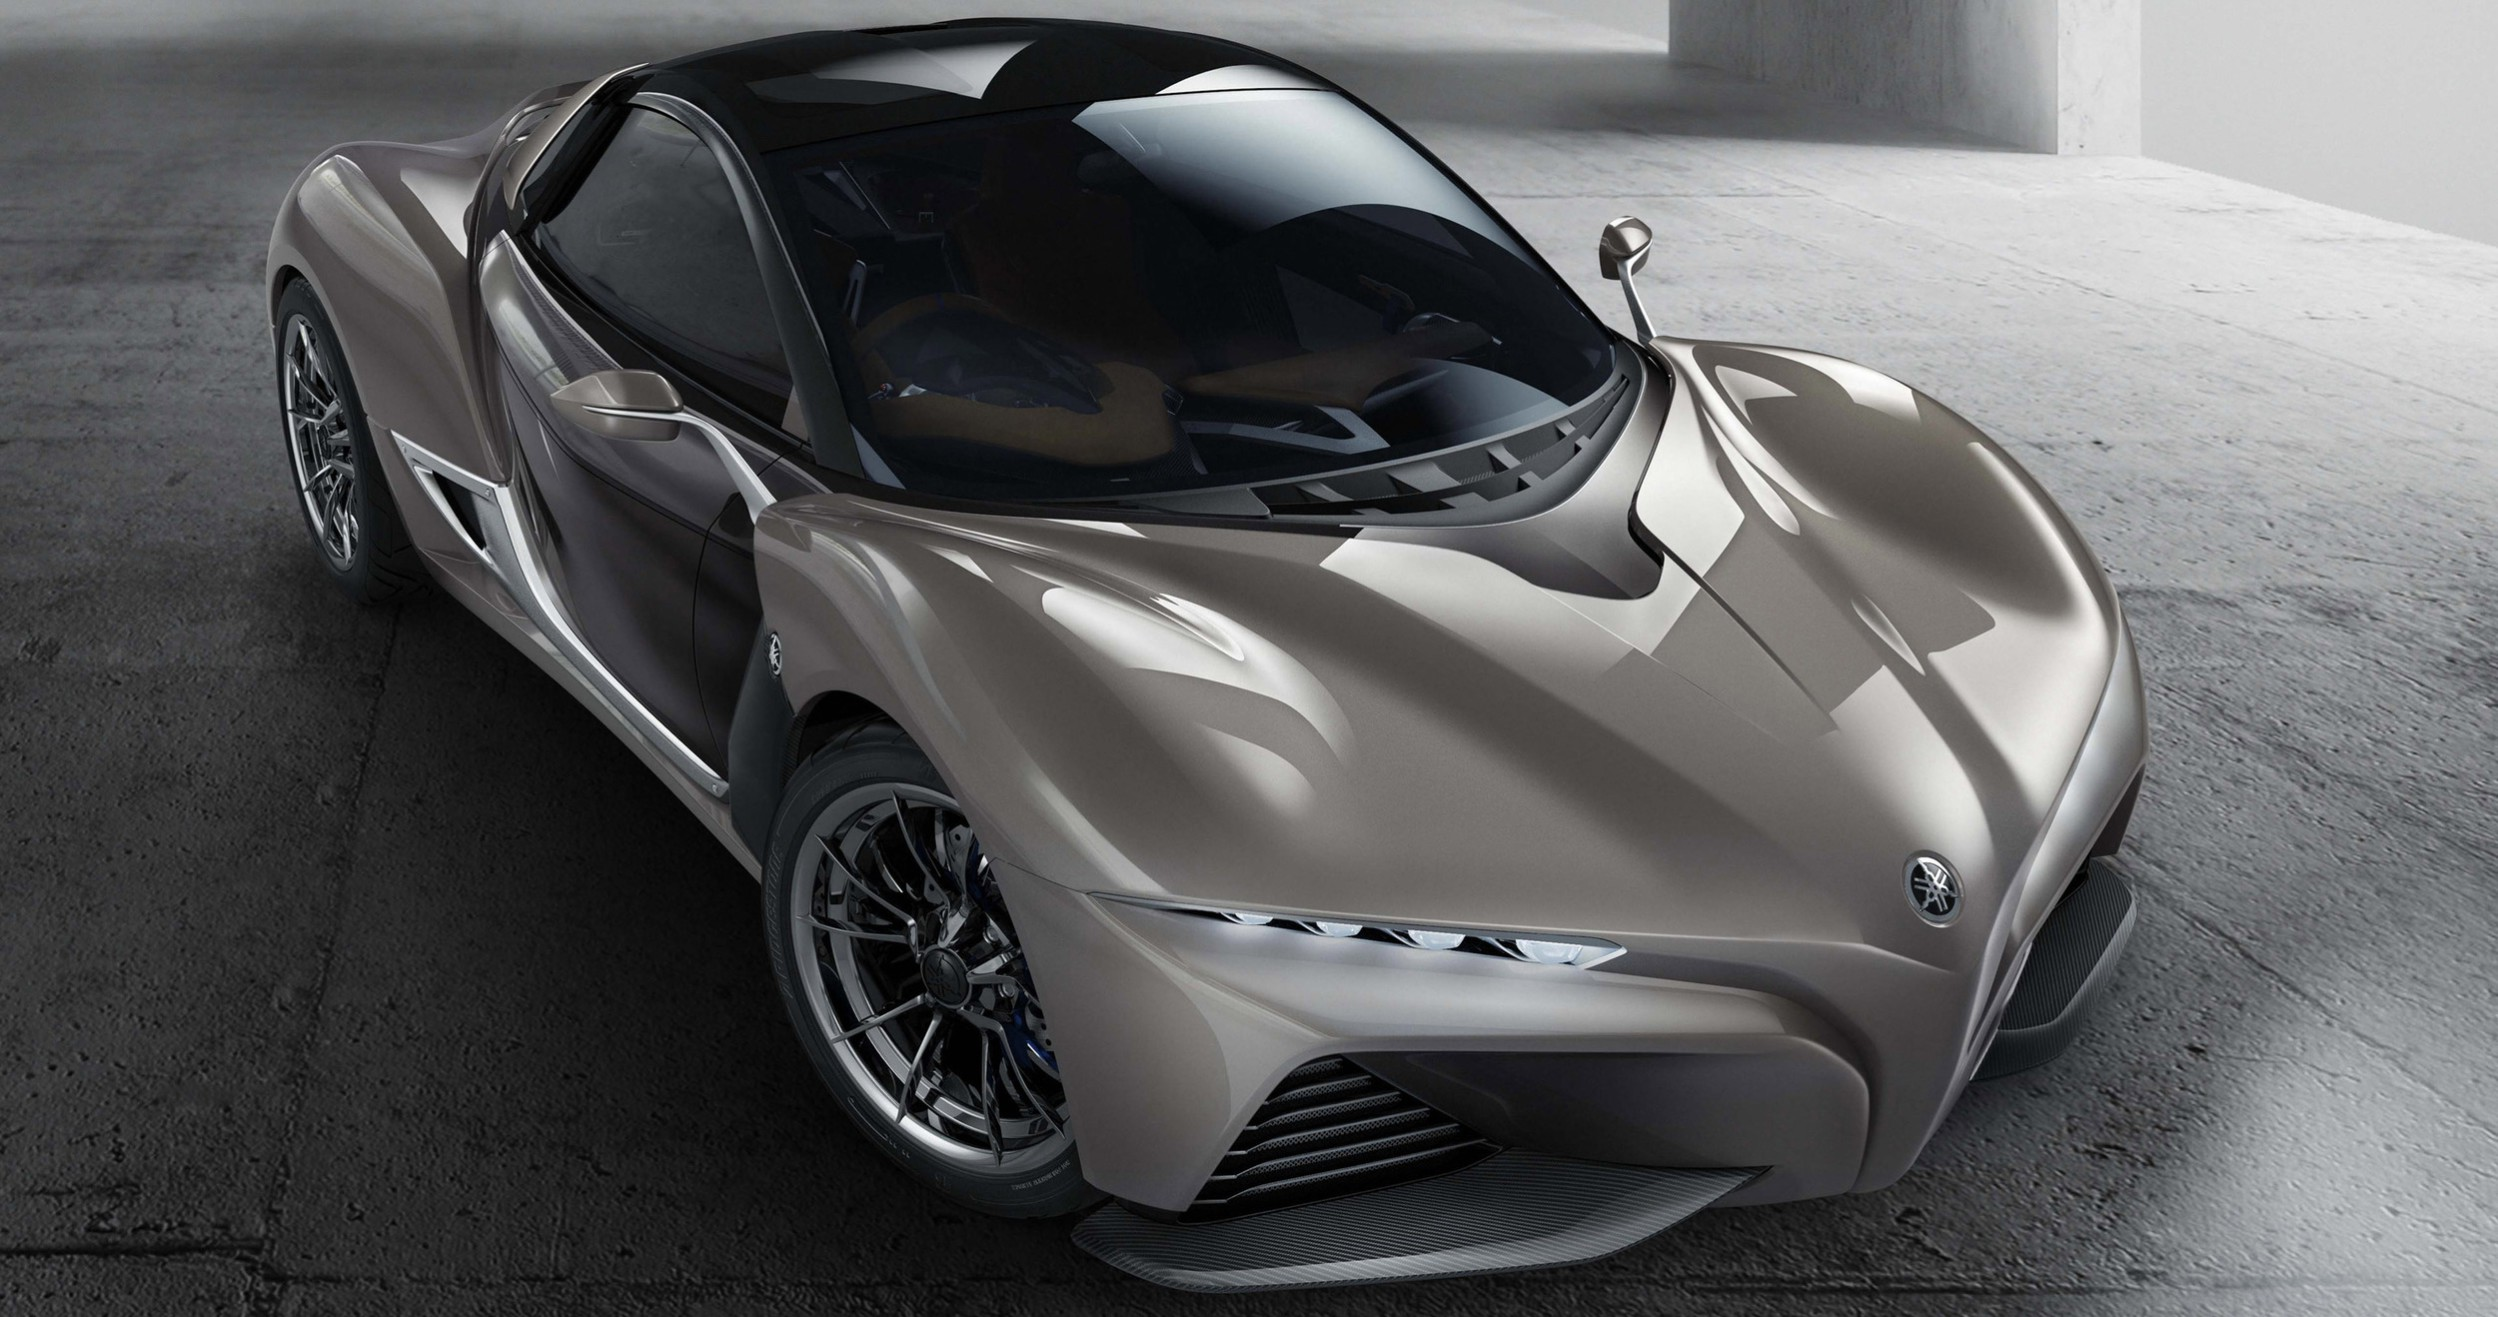 Yamaha Sports Ride Concept